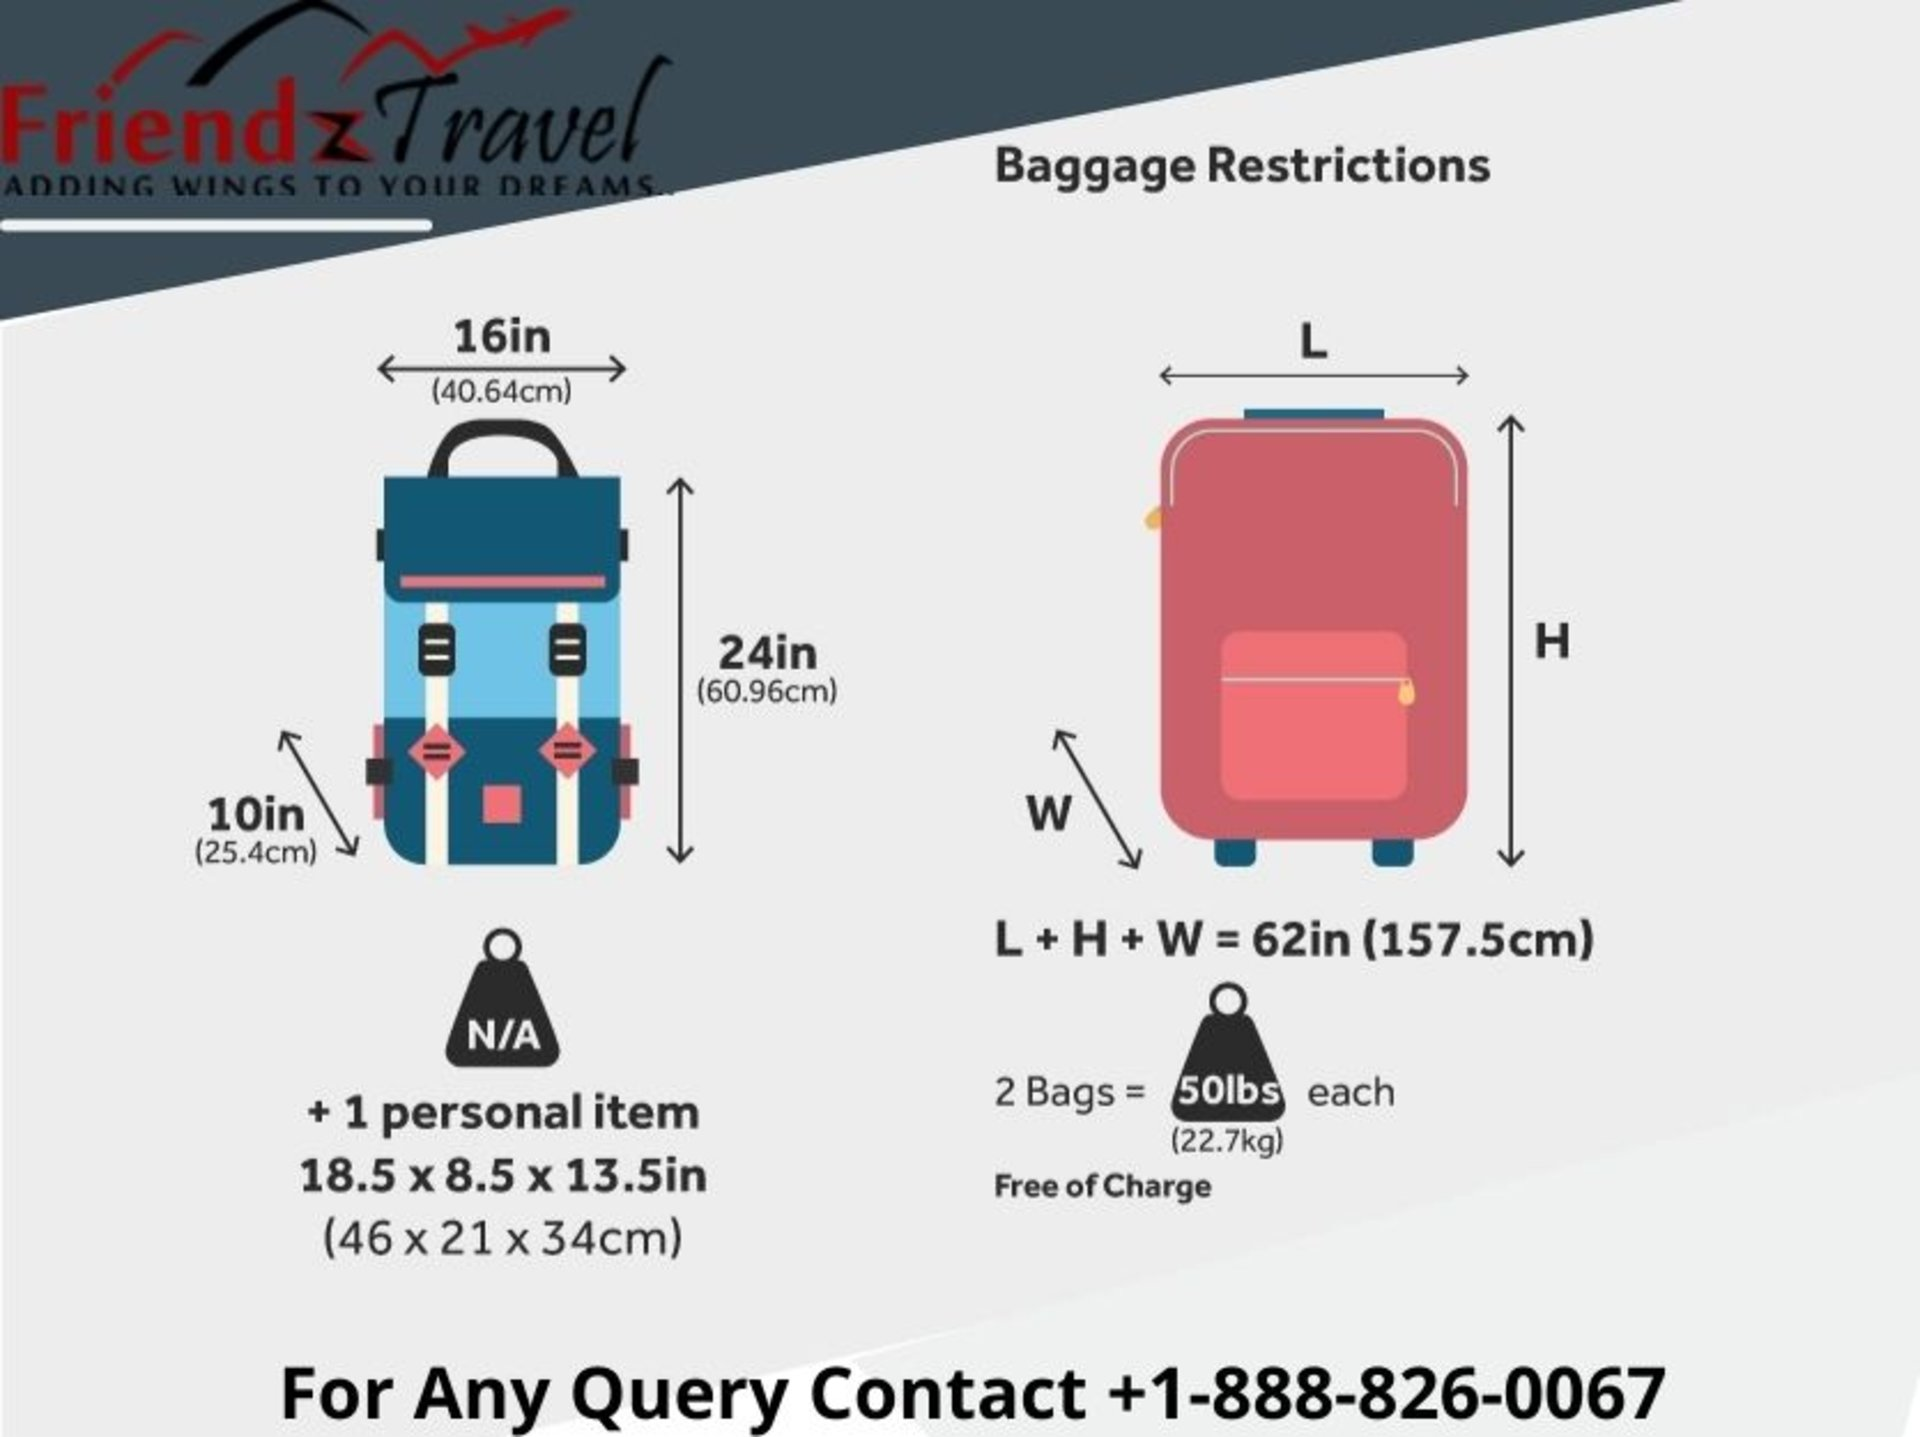 What is Southwest Airlines Baggage Policy? | JohnCarlos6790